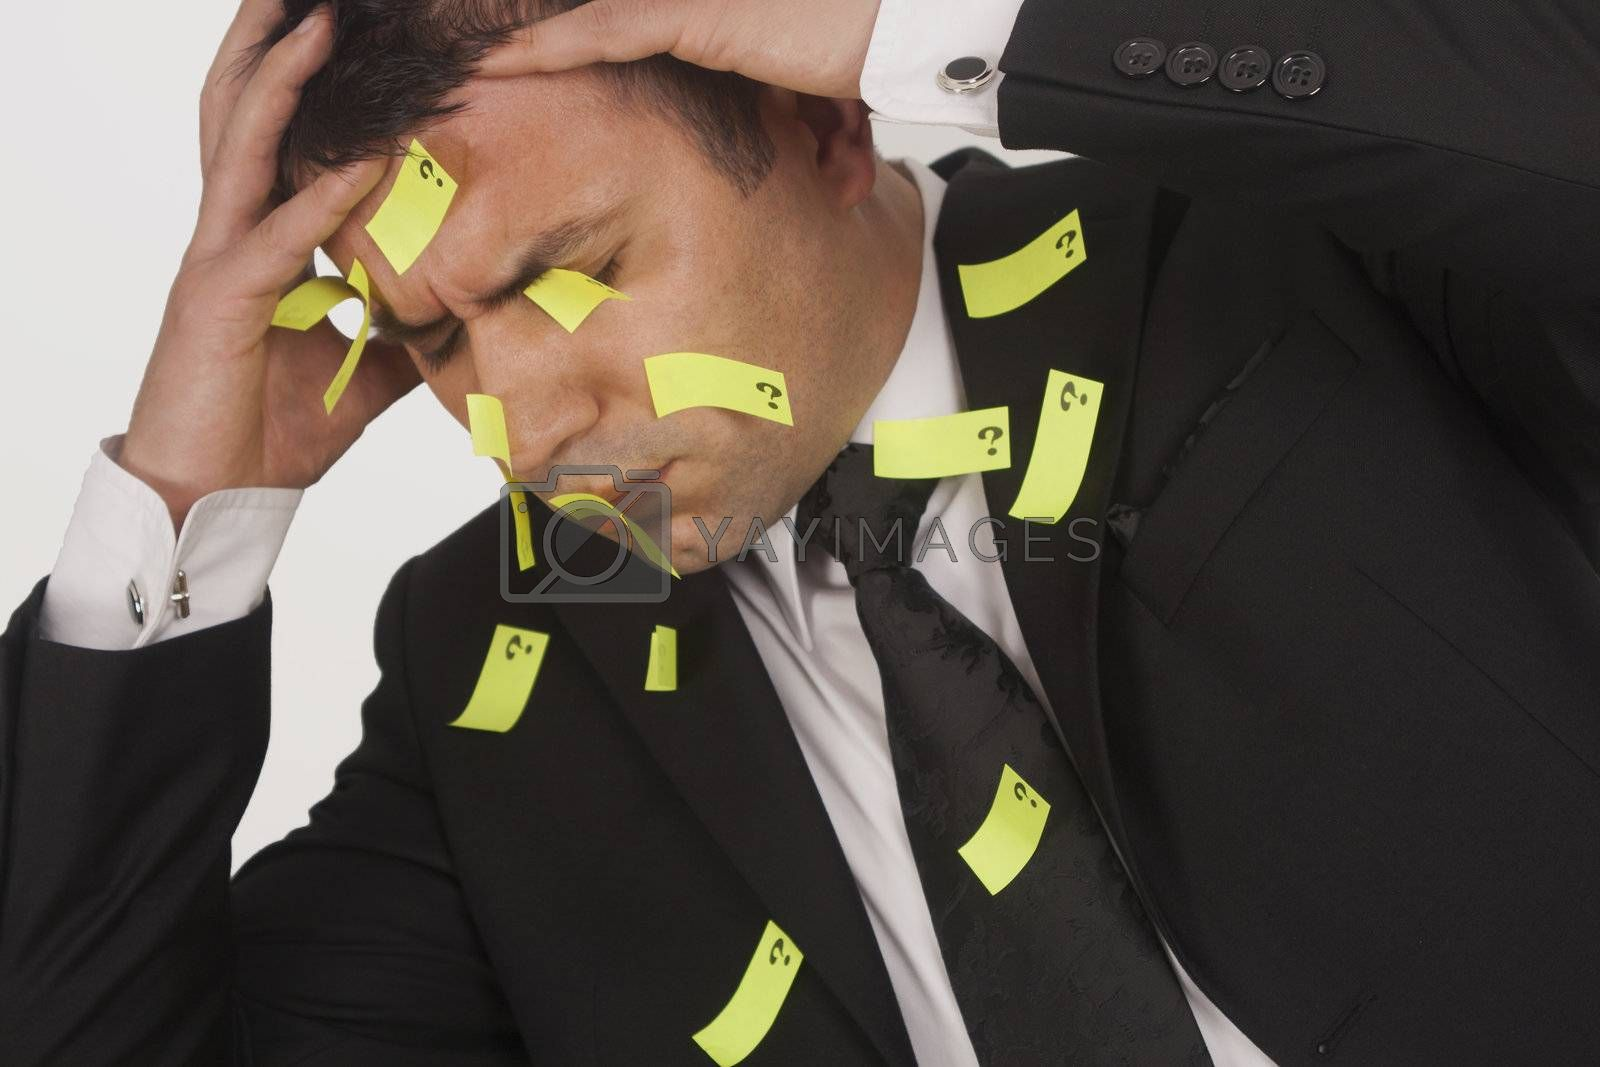 Man has sticky stickers on his suit. He looks very busy. White background.